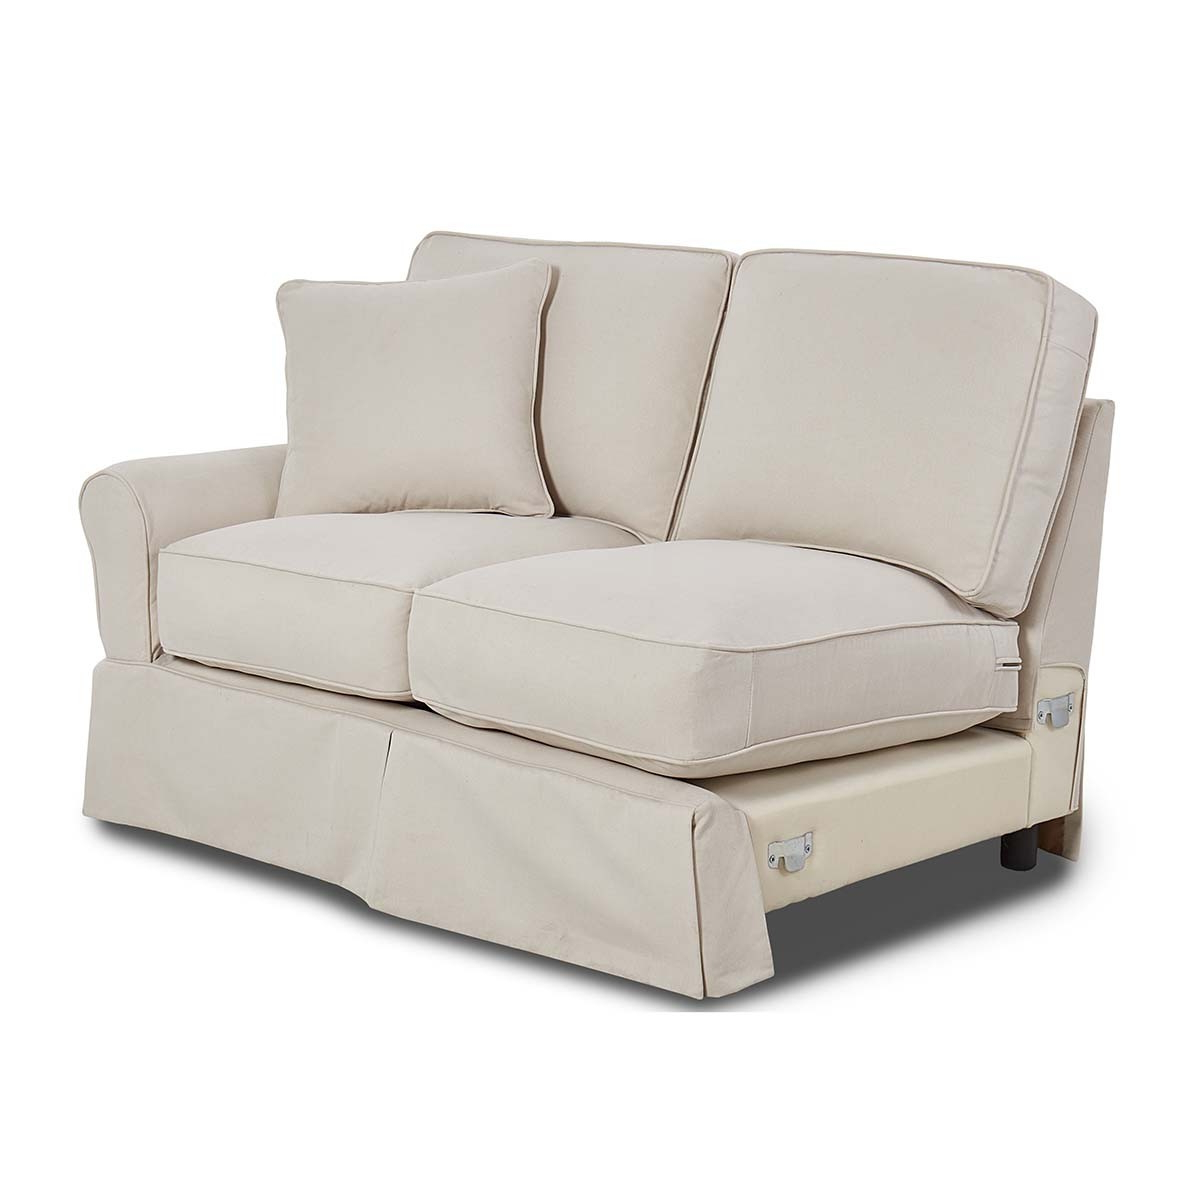 2019 Turdur 3 Piece Sectionals With Raf Loveseat Inside Knightsbridge Sectional (View 5 of 20)